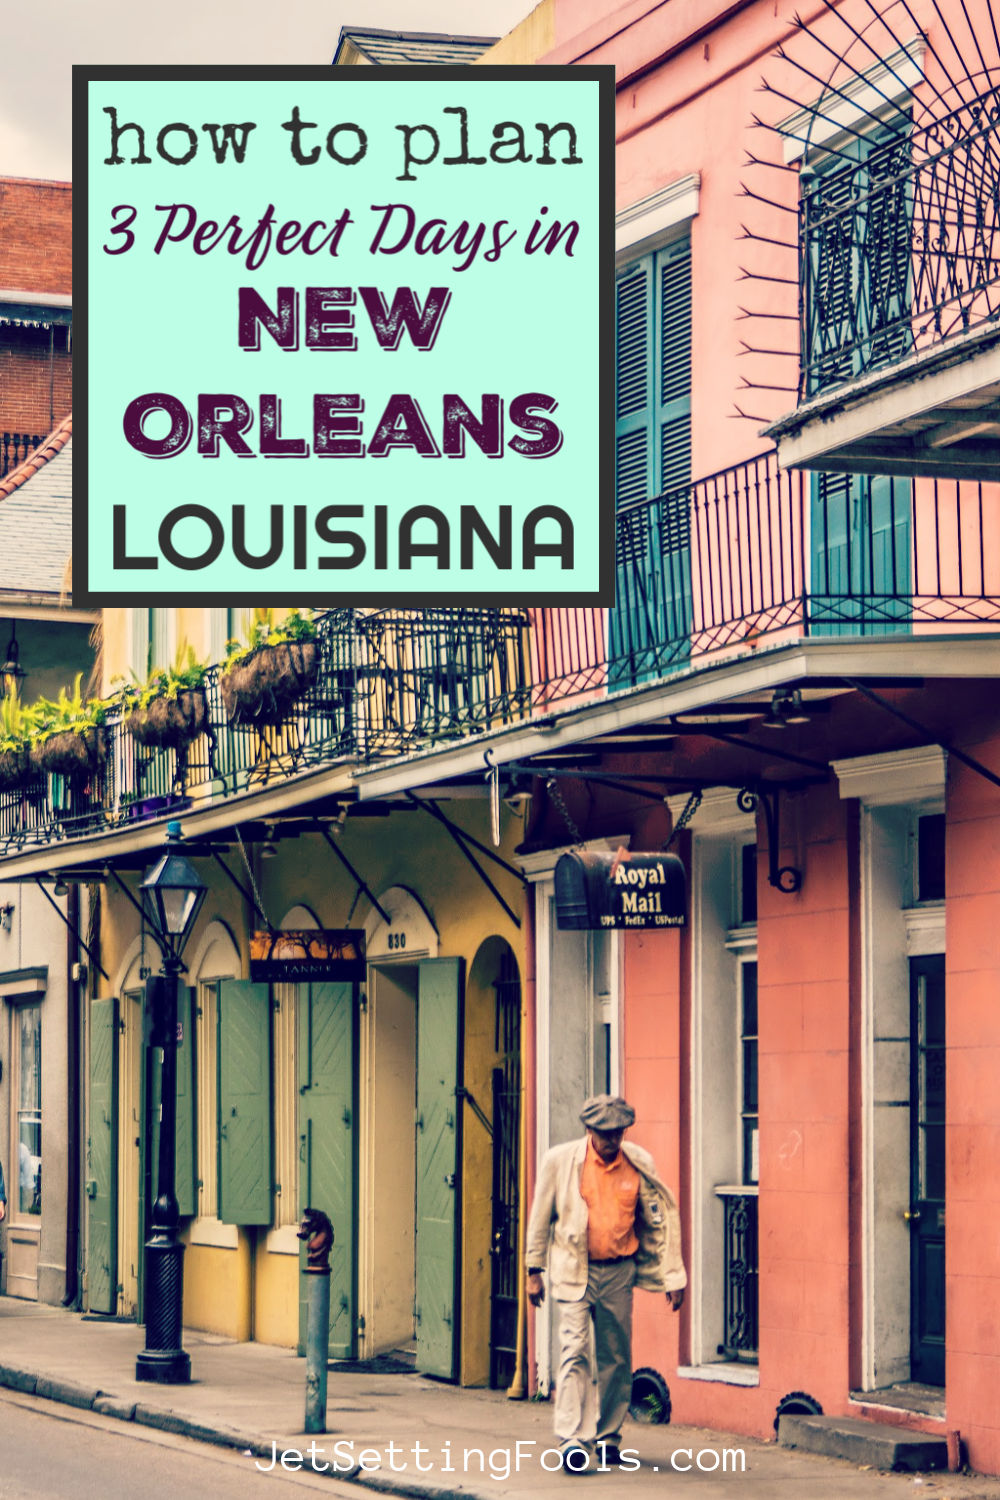 How To Plan a Perfect 3 Days in New Orleans Louisiana by JetSettingFools.com